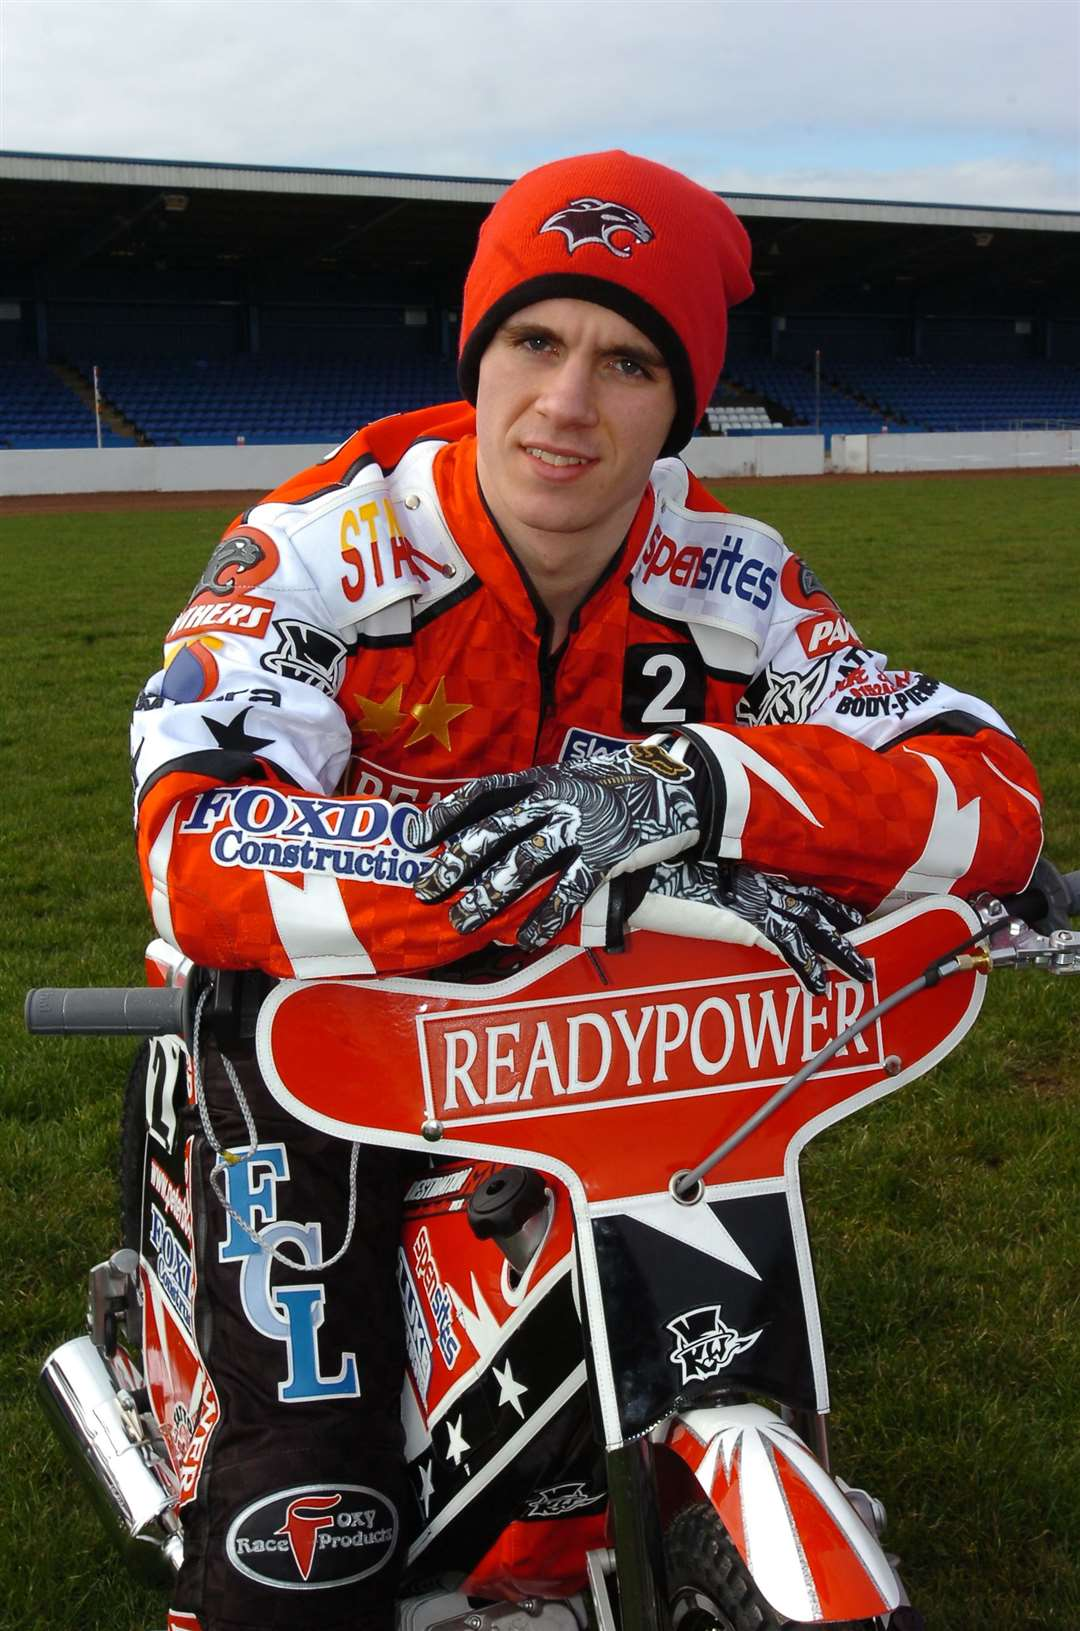 Peterborough Panthers press day at Alwalton Lewis Bridger. (44270557)